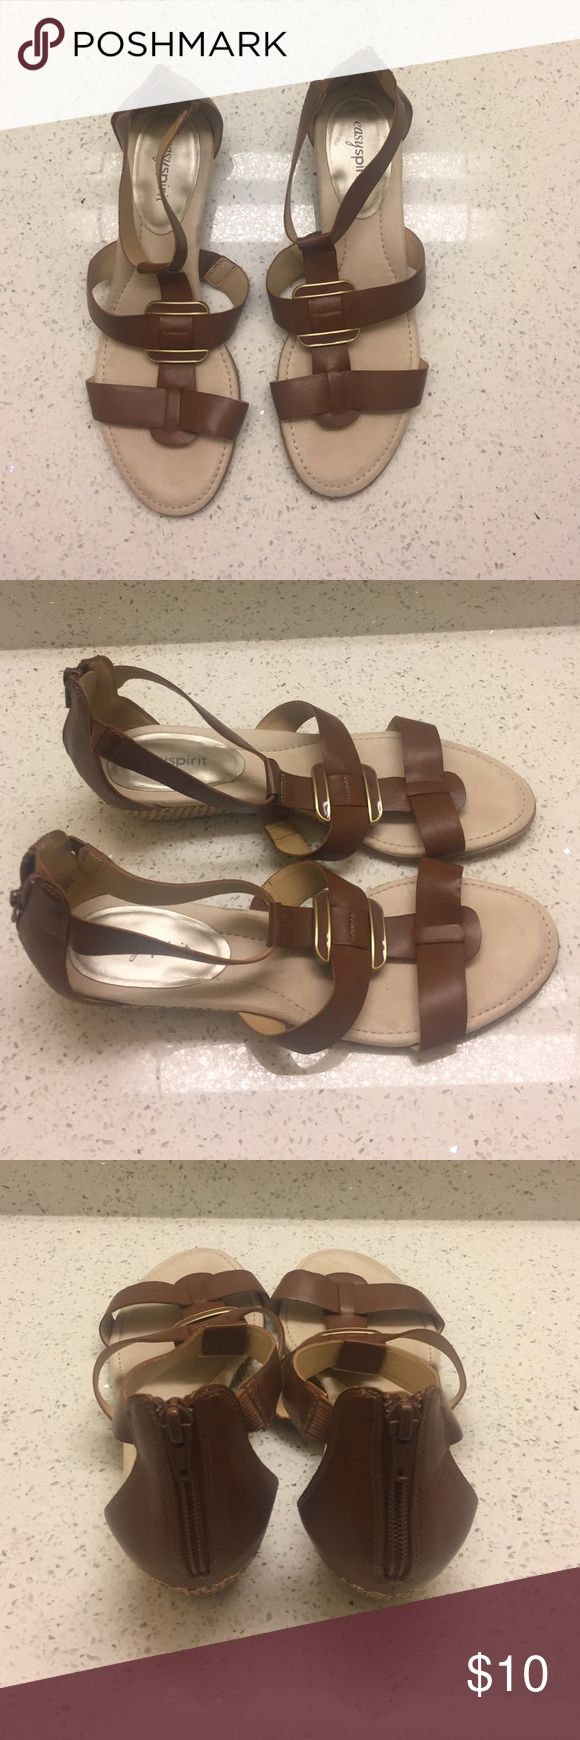 Easy Spirit Sandals Brown and Beige Sandals (small wedge) Easy Spirit Shoes Sandals